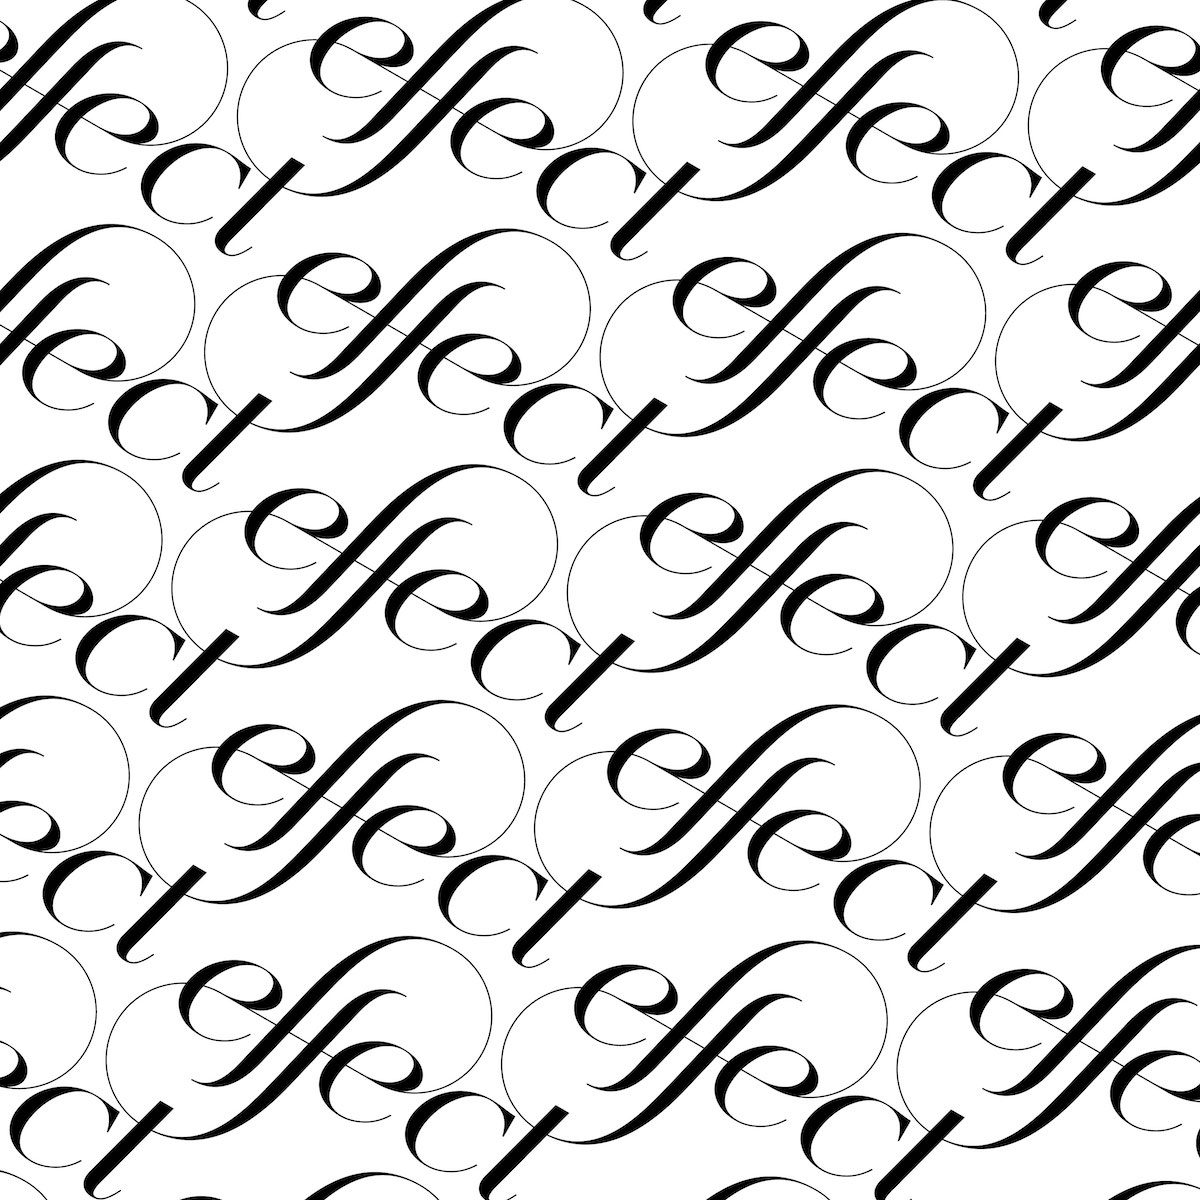 'Unnecessarily Infinite Effect' from Type Beasts Series